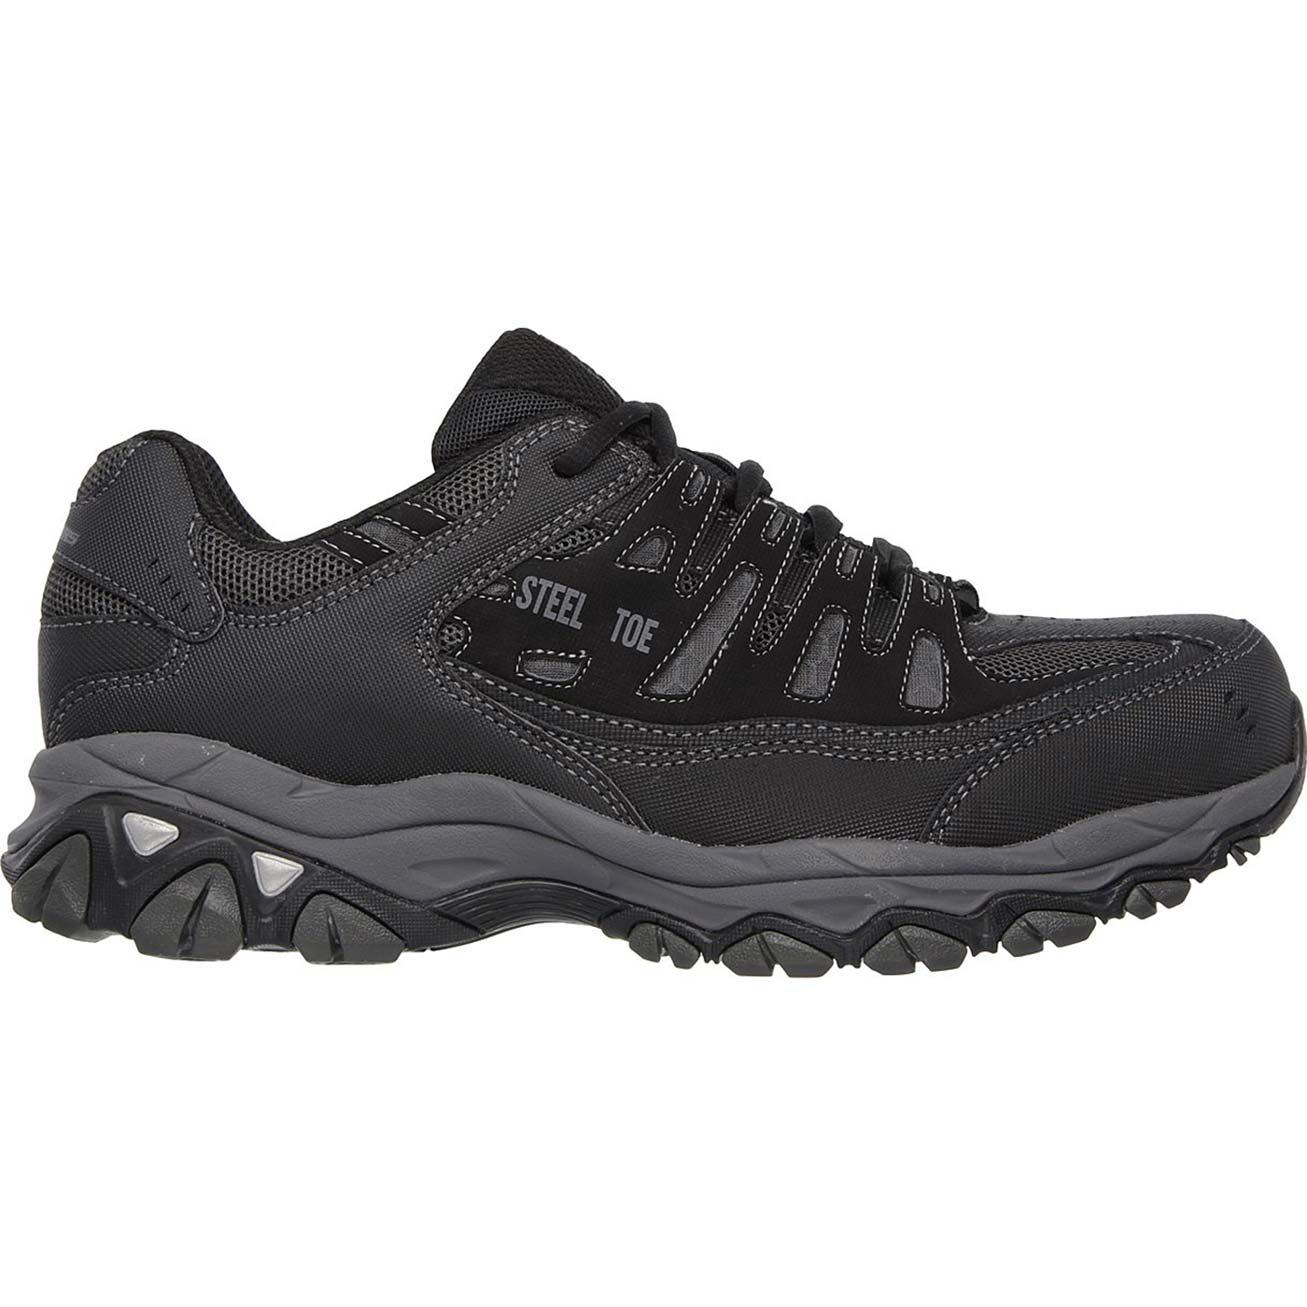 Skechers Shoes Mens Wide